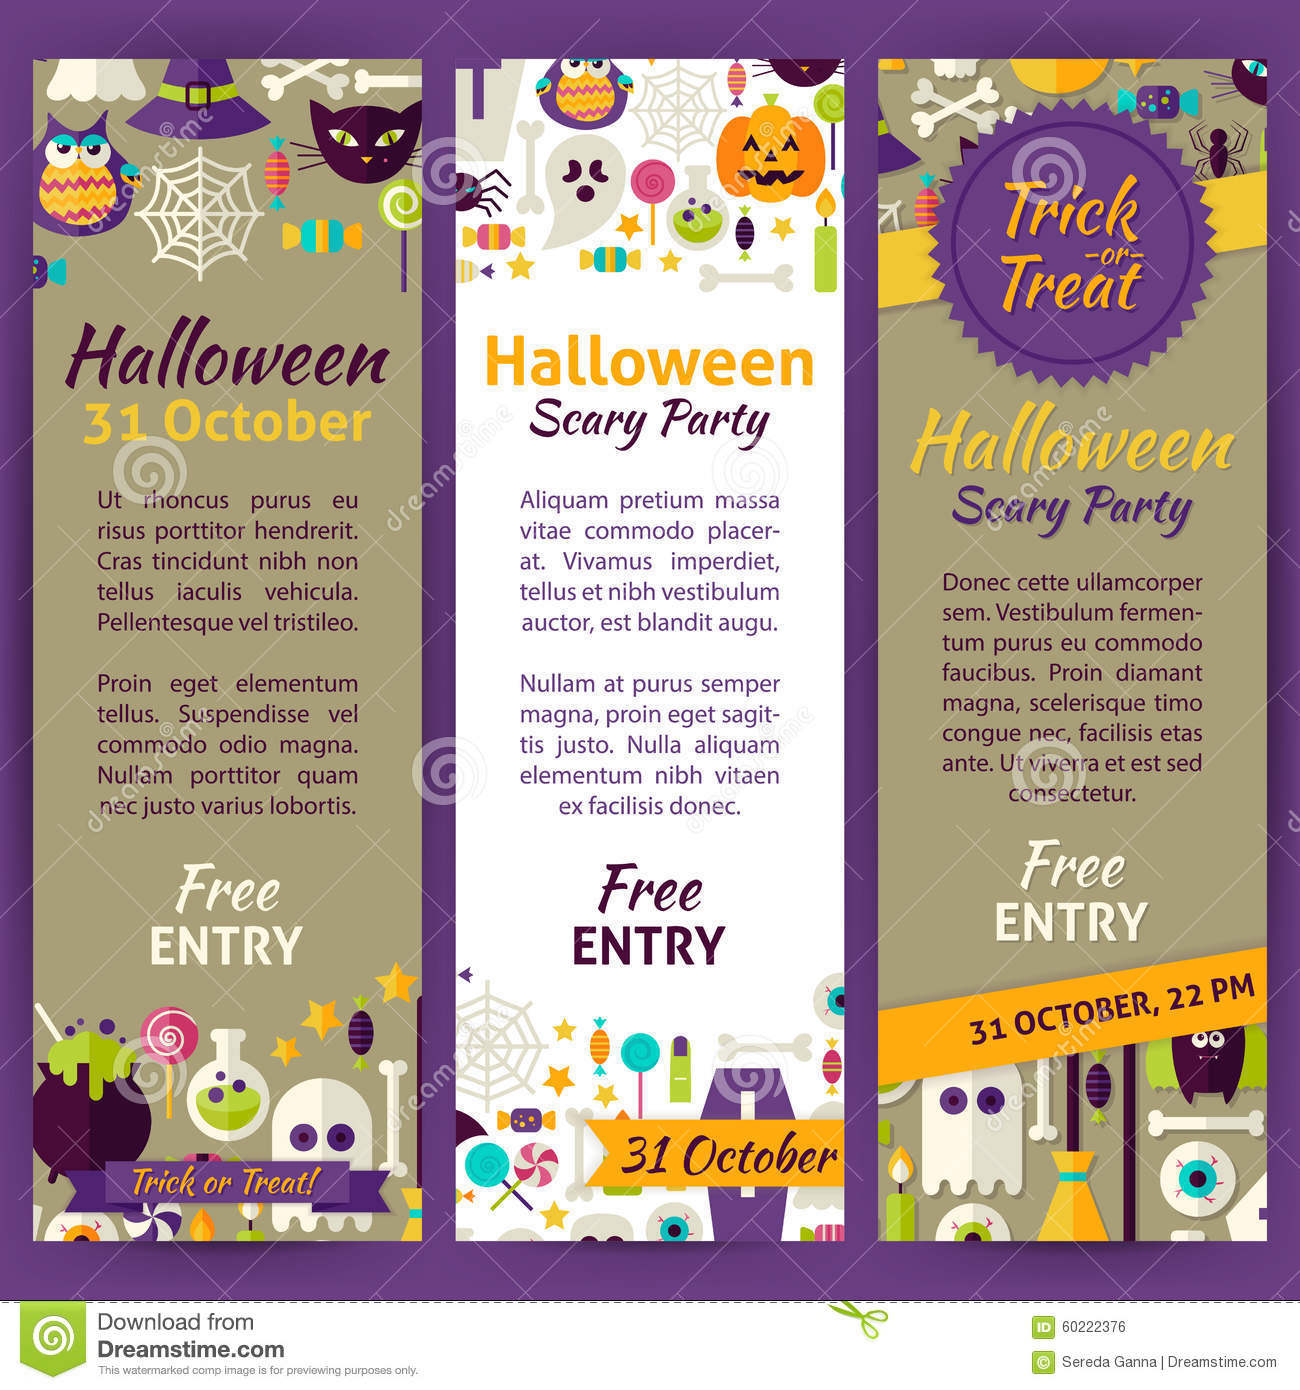 halloween party invitation template holiday stock vector image trick or treat halloween party invitation vector template flyer royalty stock image